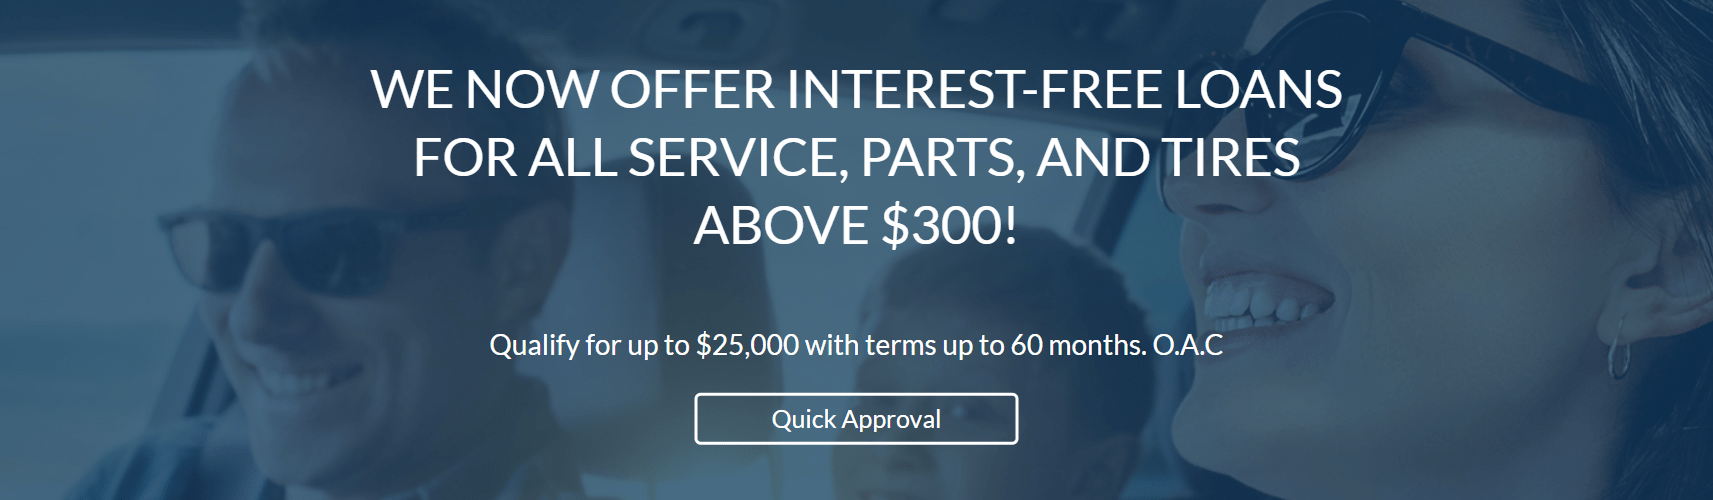 Ford Interest-Free Loans image